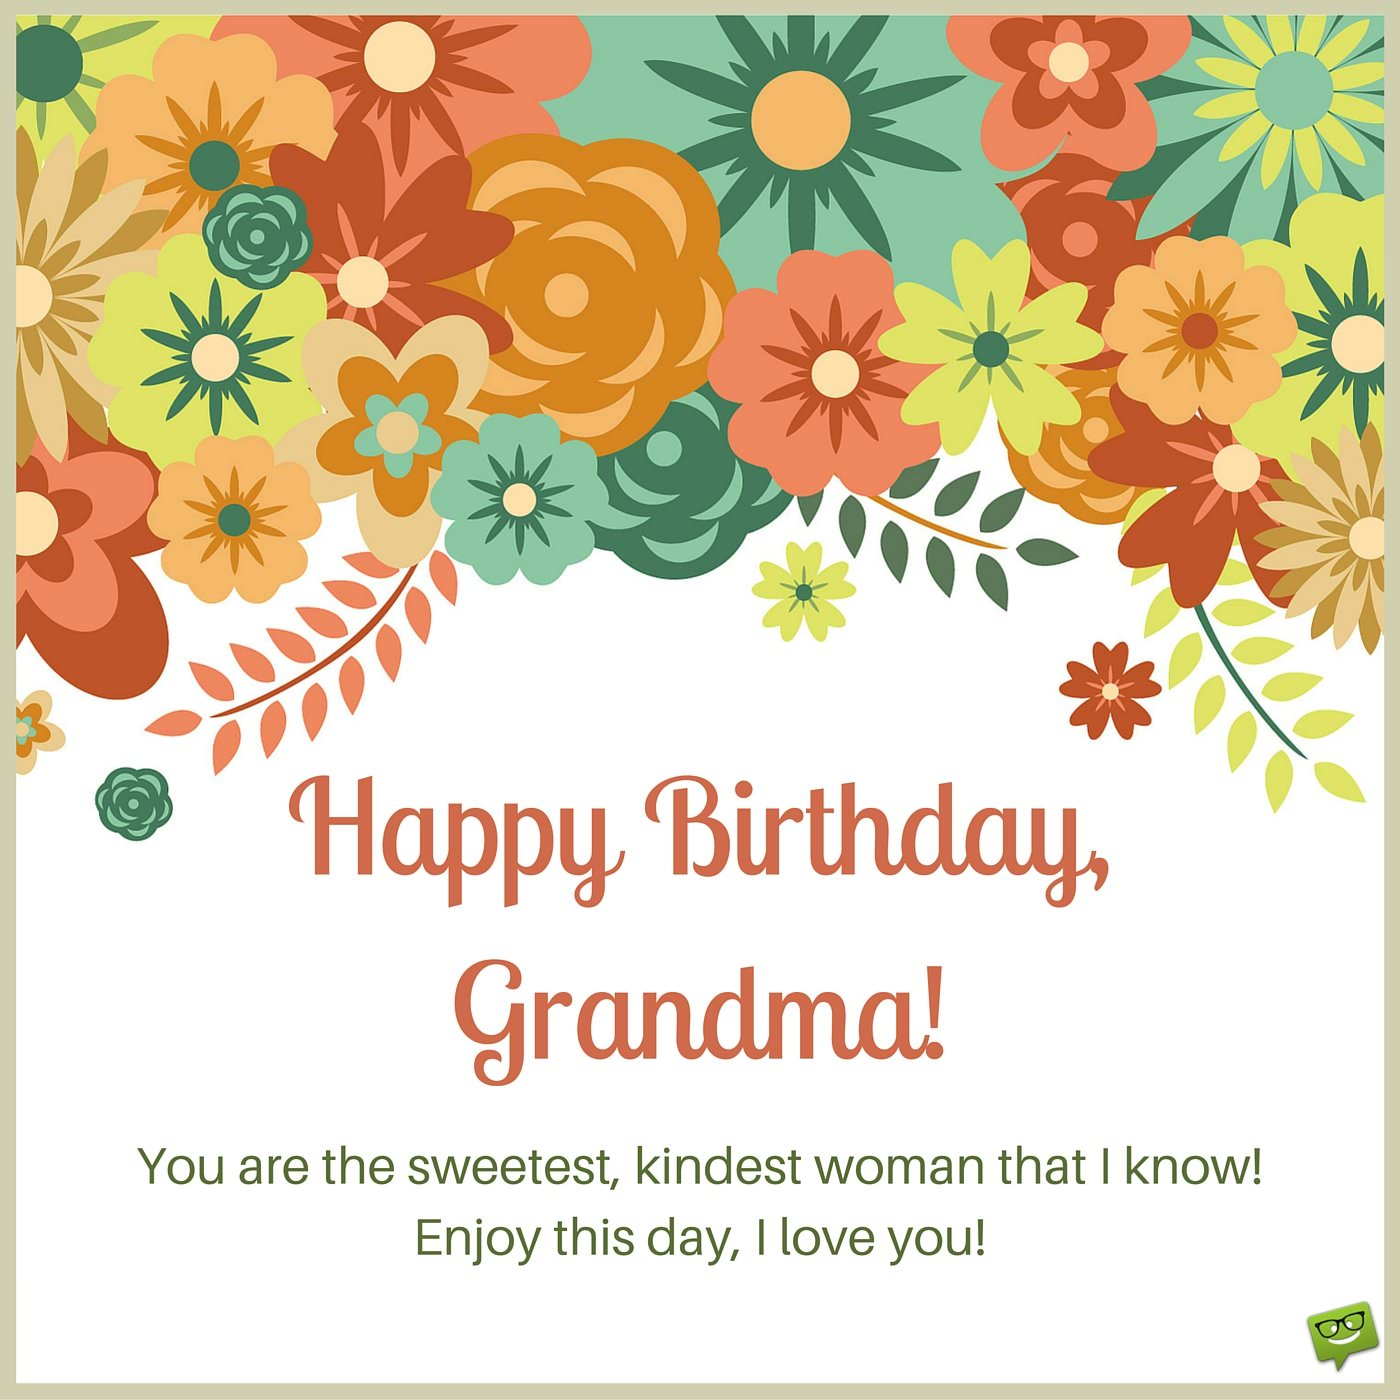 Birthday wish for grandma on card with drawings of colorful flowers birthday wish for grandma on card with drawings of colorful flowers izmirmasajfo Choice Image